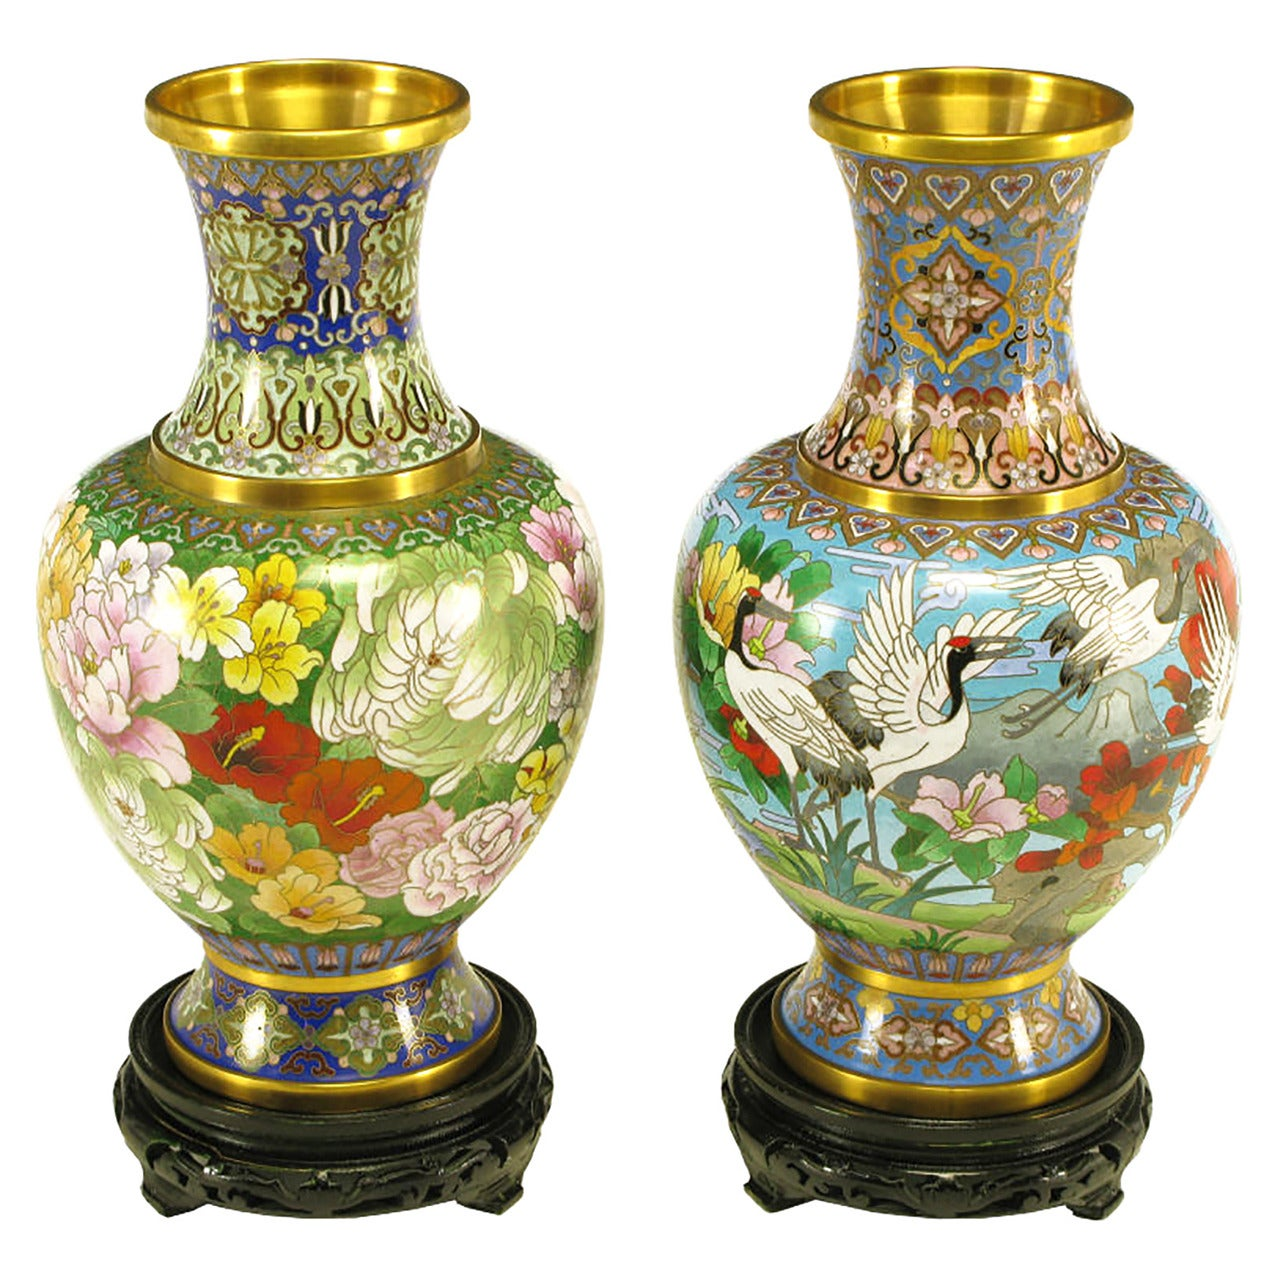 Pair of Colorful Chinese Jingfa Cloisonné Vases with Carved Mahogany Bases